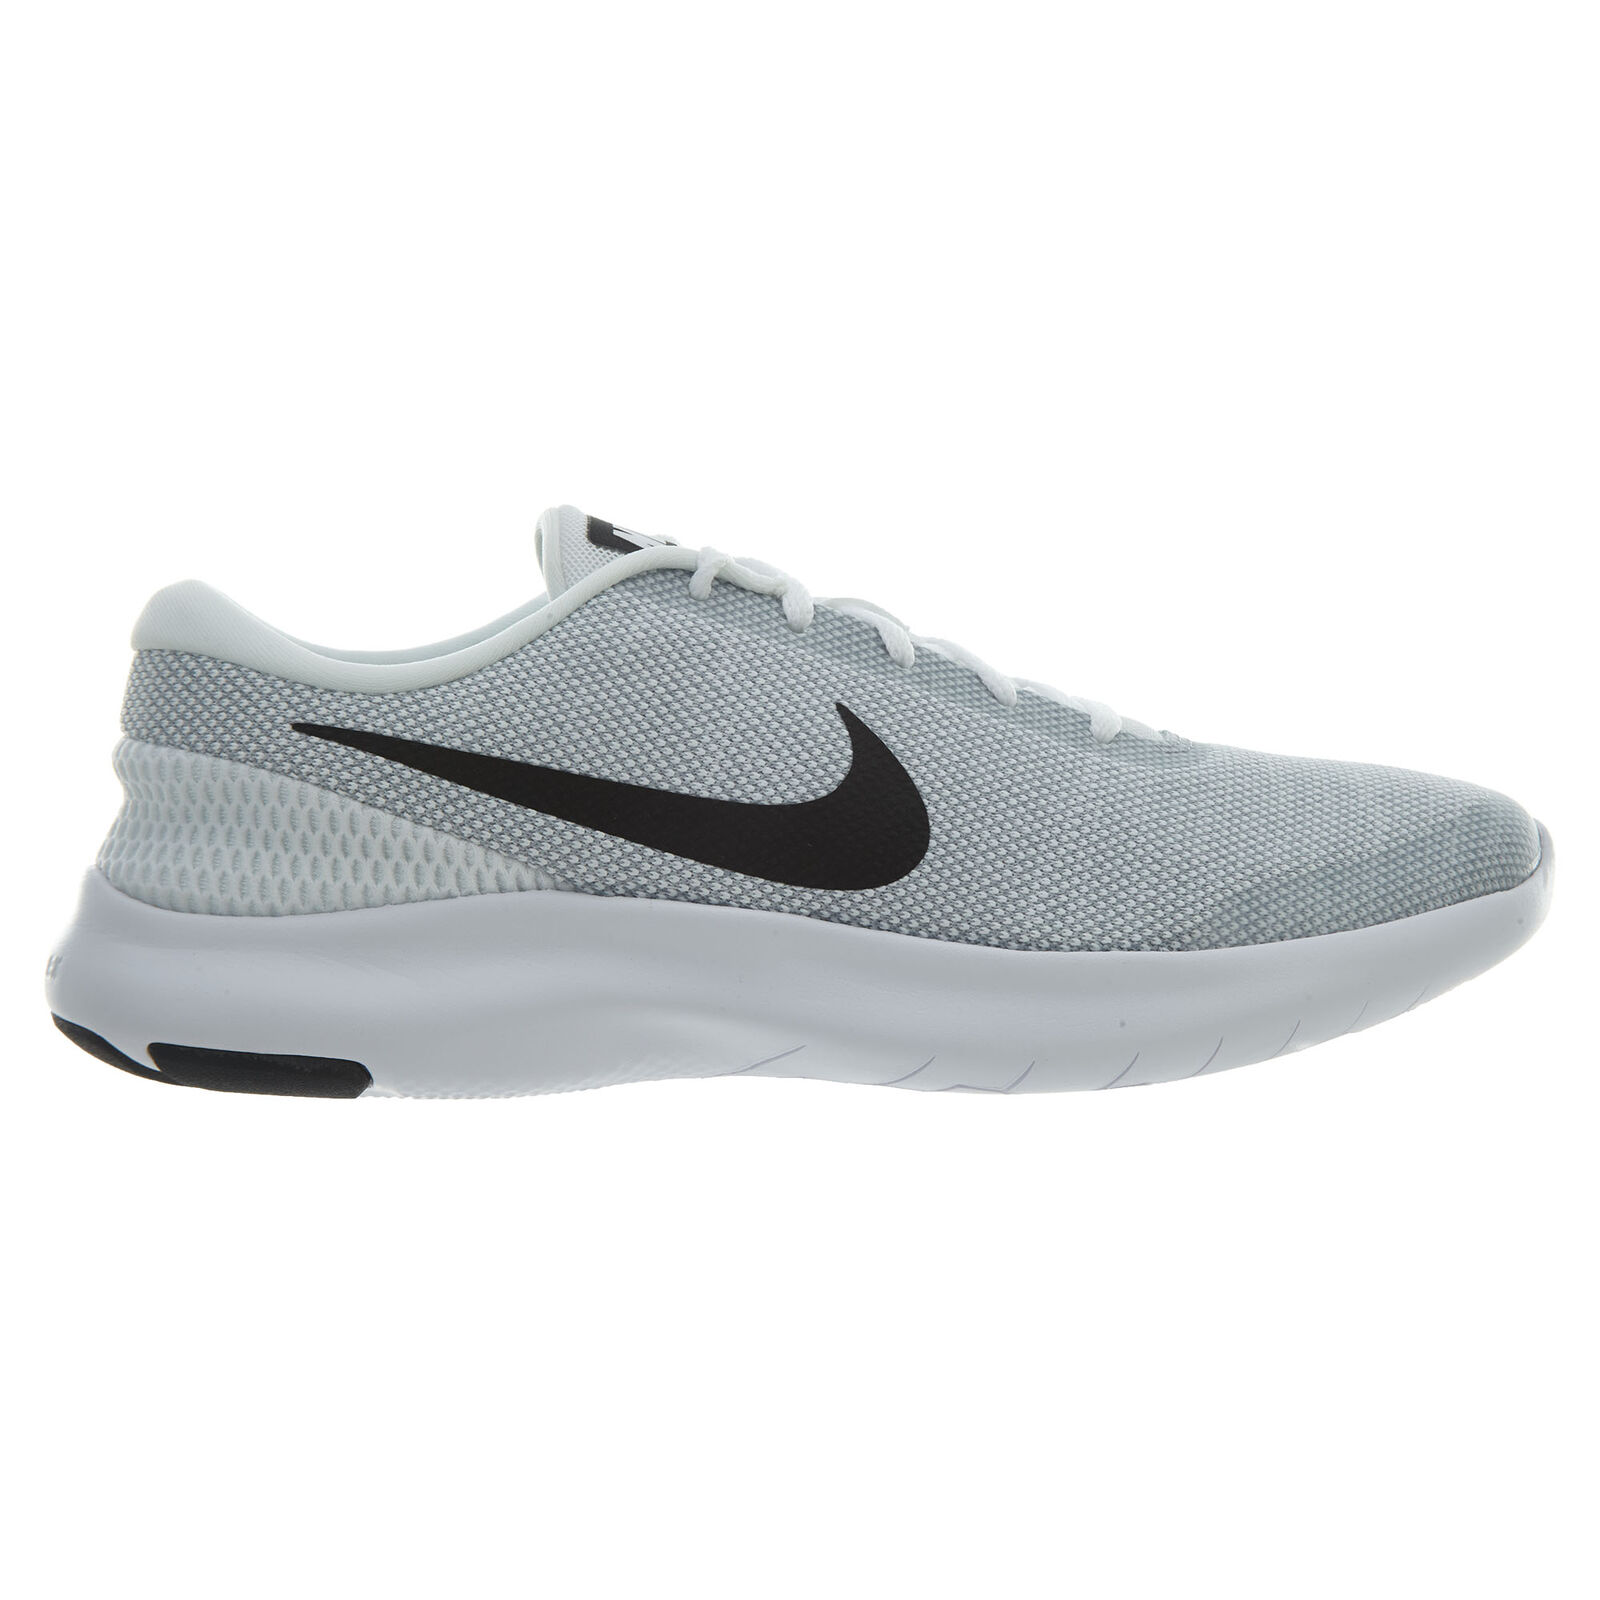 Nike Flex Experience RN 7 Mens 908985-100 Grey White Running shoes Size 7.5